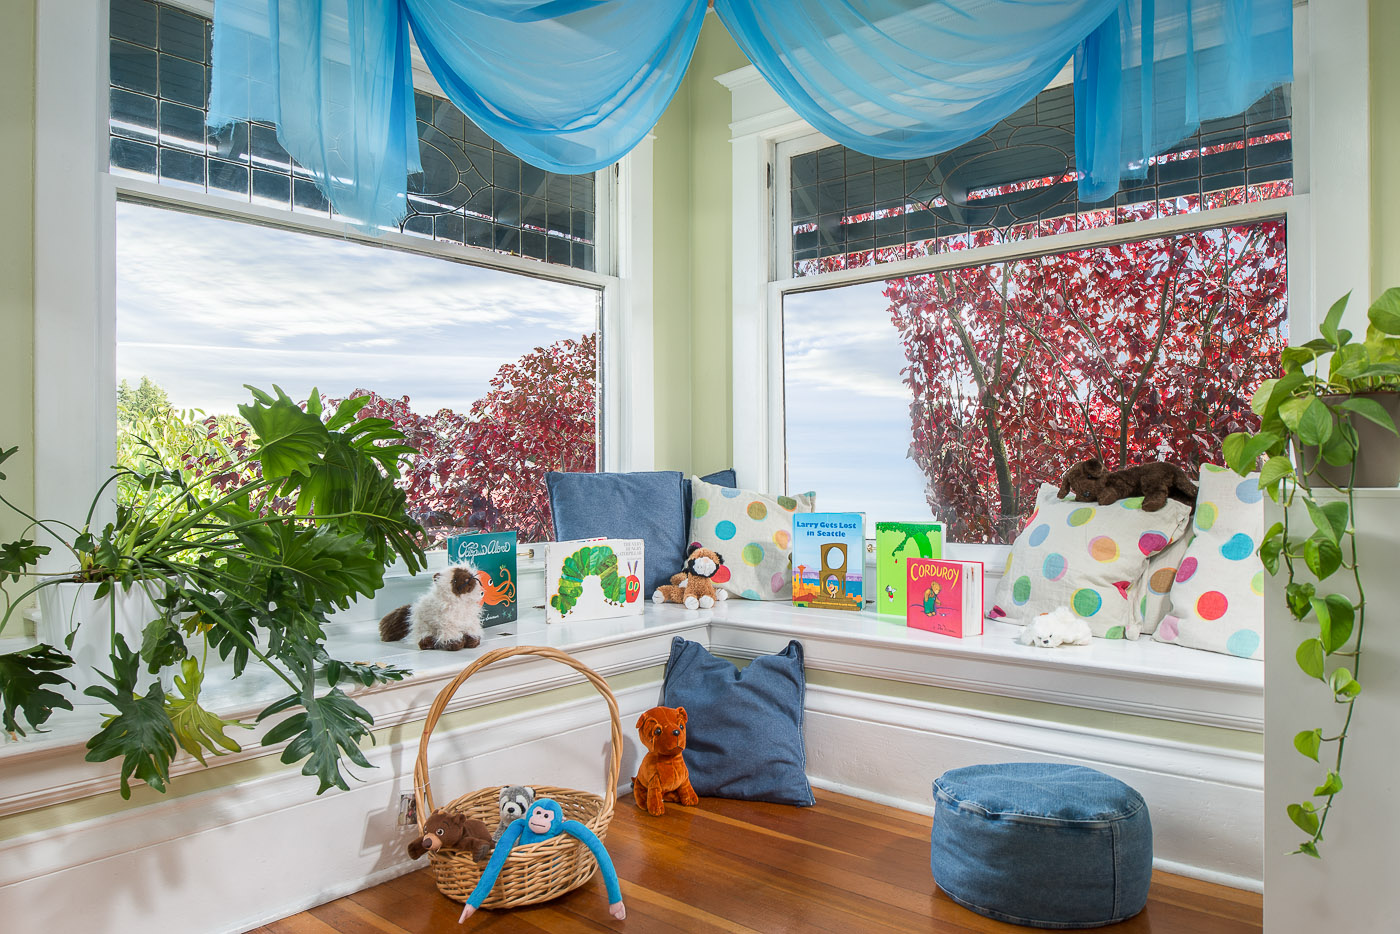 Preschool reading nook with books and stuffed animals for kids to engage